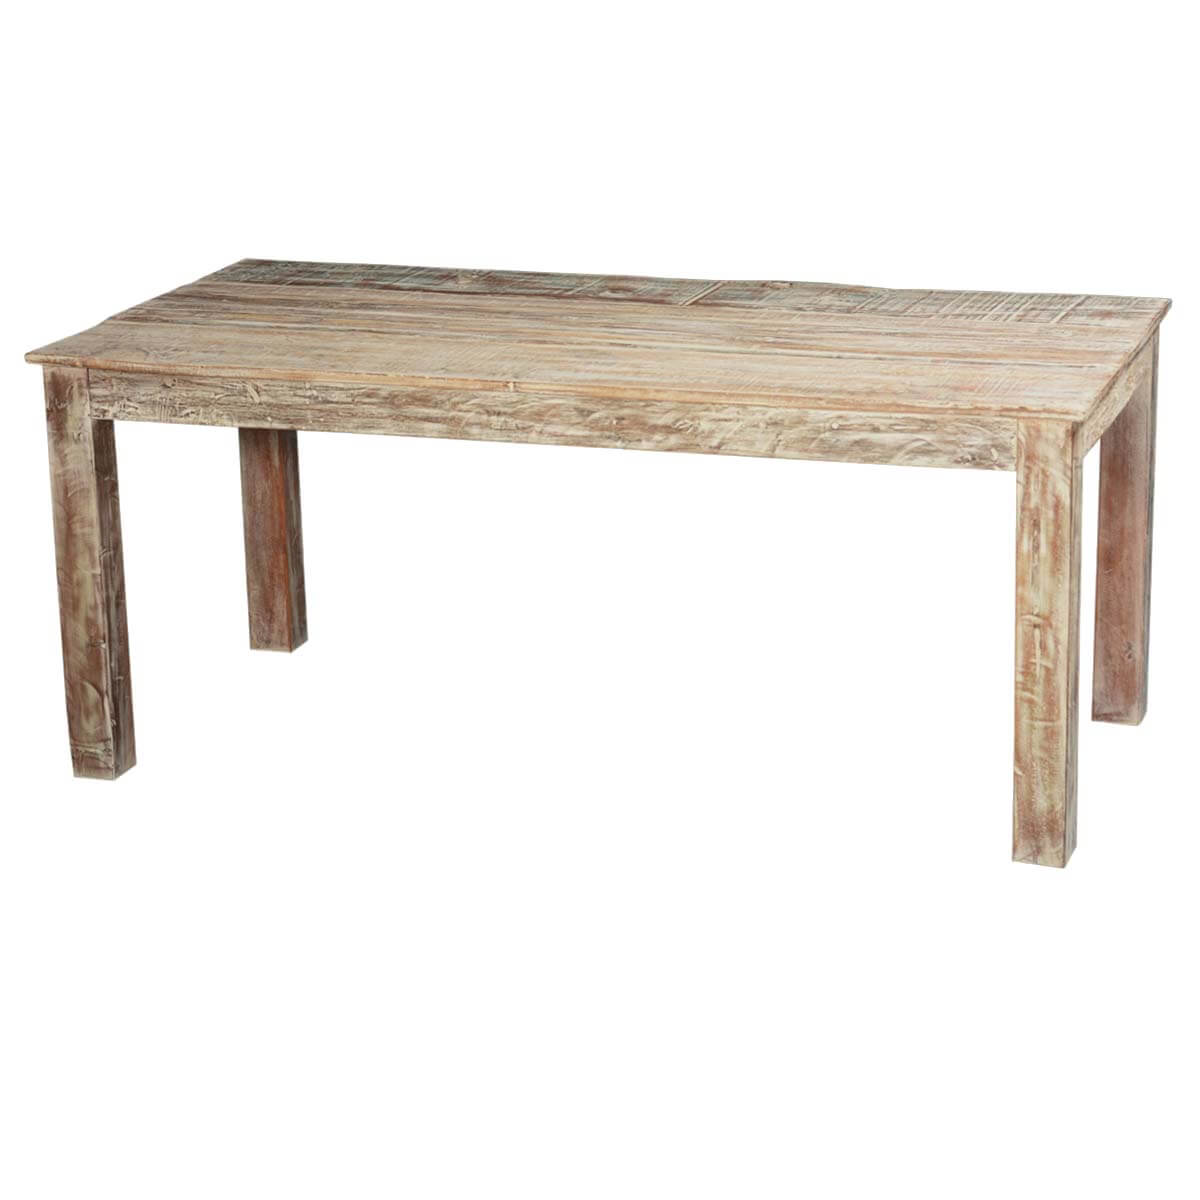 Rustic reclaimed wood 71 quot texas distressed dining table